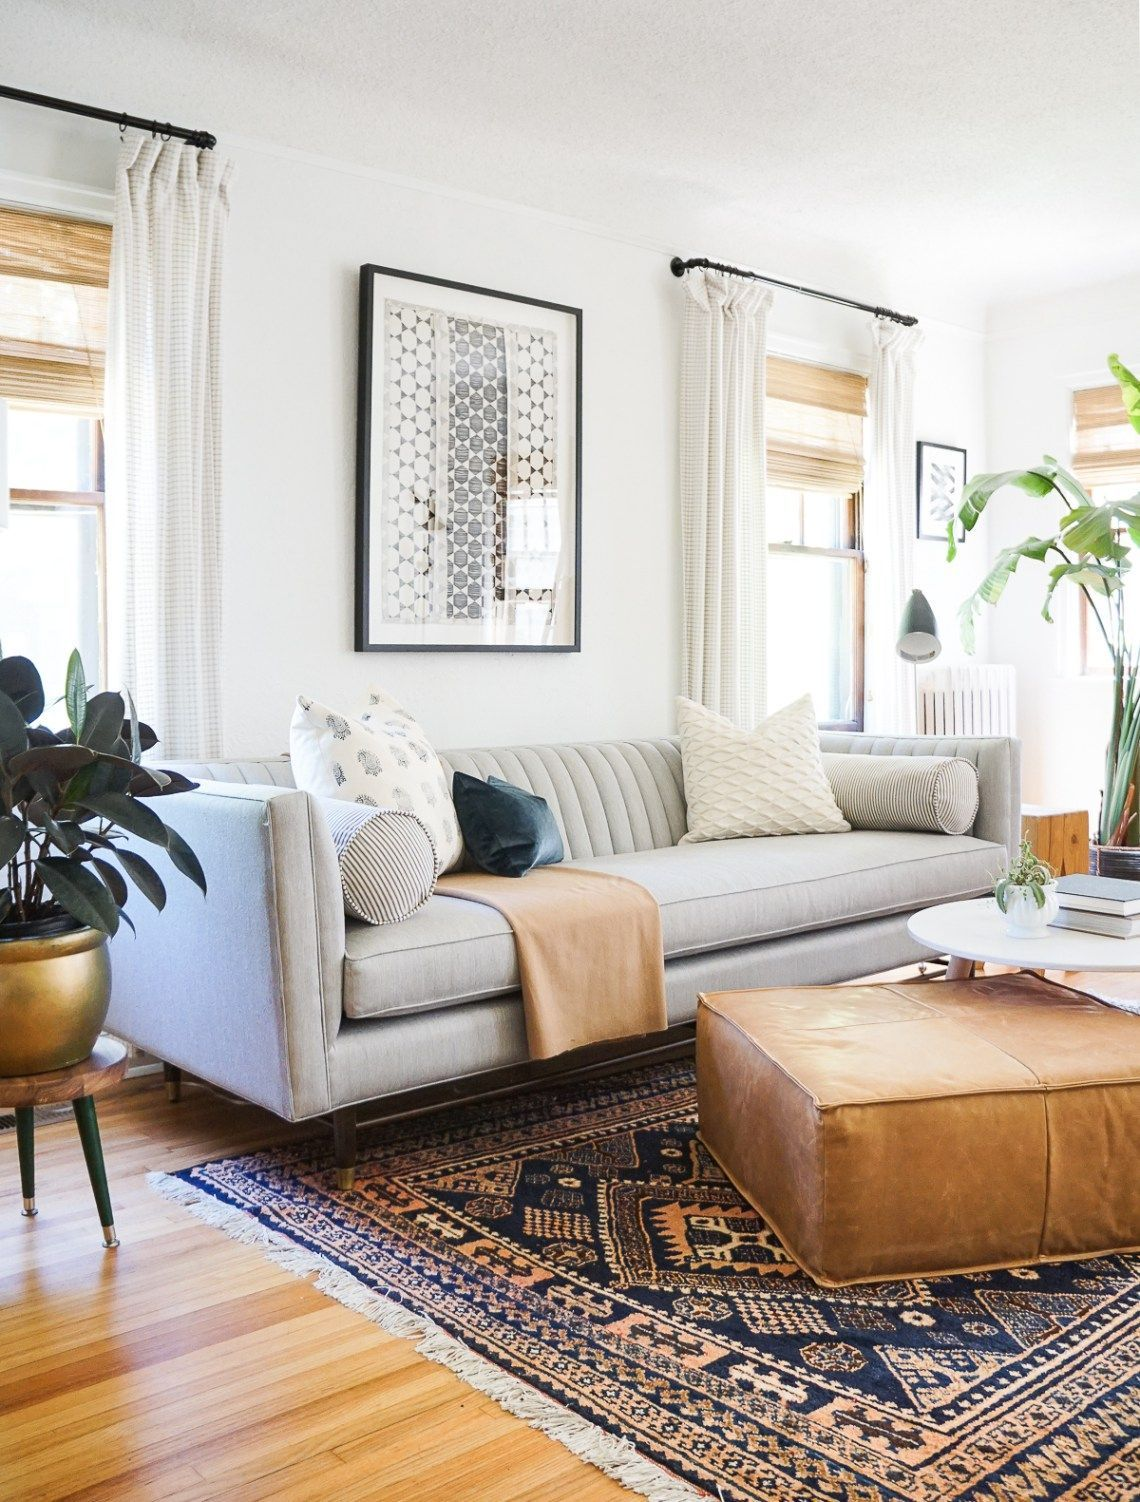 Kid-friendly Design Updates That Are Also Style Savvy Kid friendly design updates we've made in our living room to suit the needs of our growing family, while also maintaining our personal style. #remodelingorroomdesign